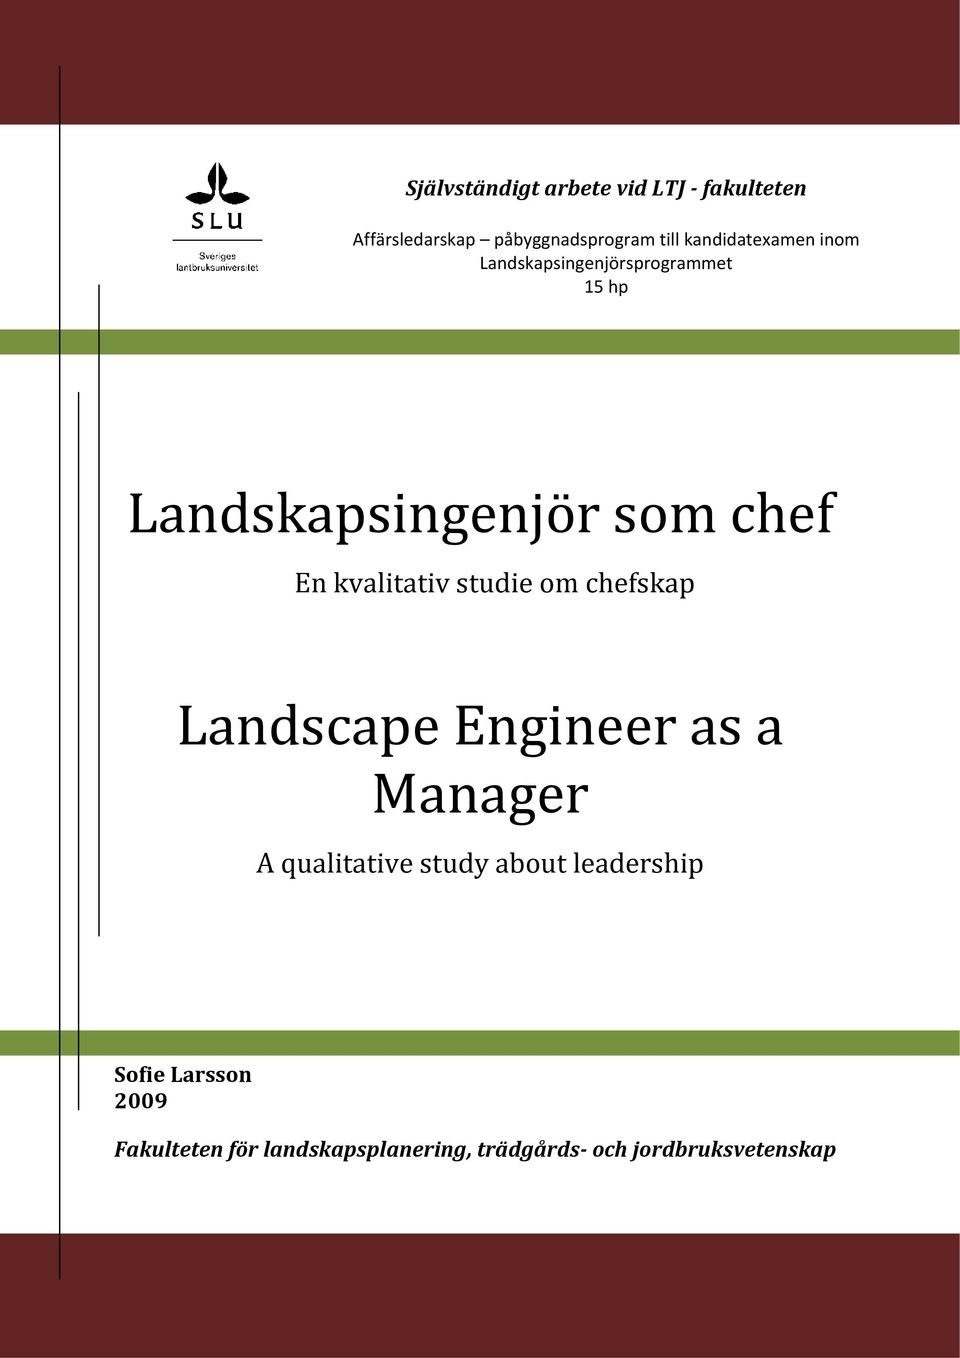 kvalitativ studie om chefskap Landscape Engineer as a Manager A qualitative study about